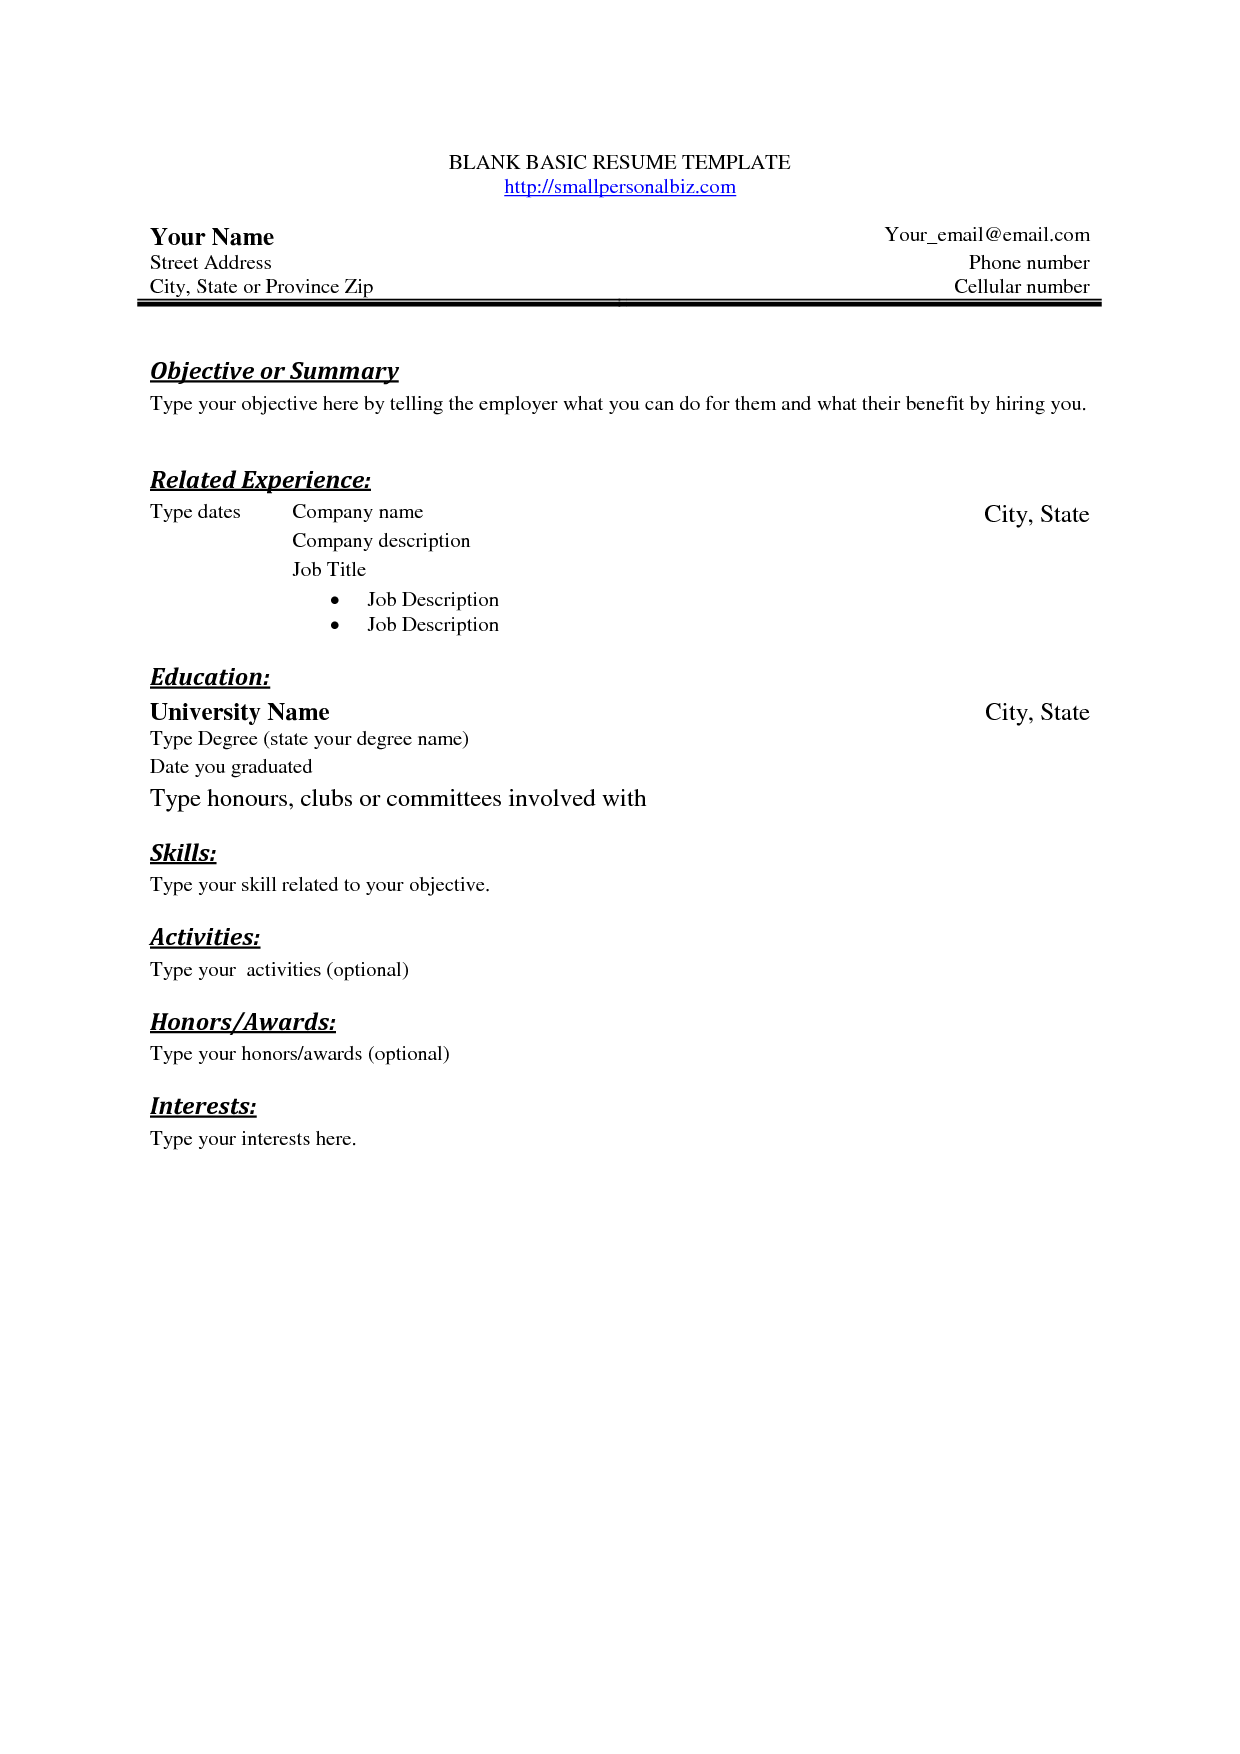 Basic Resume Examples Awesome Stylist And Luxury Simple Resume Layout 10 Free Basic Blank Resume